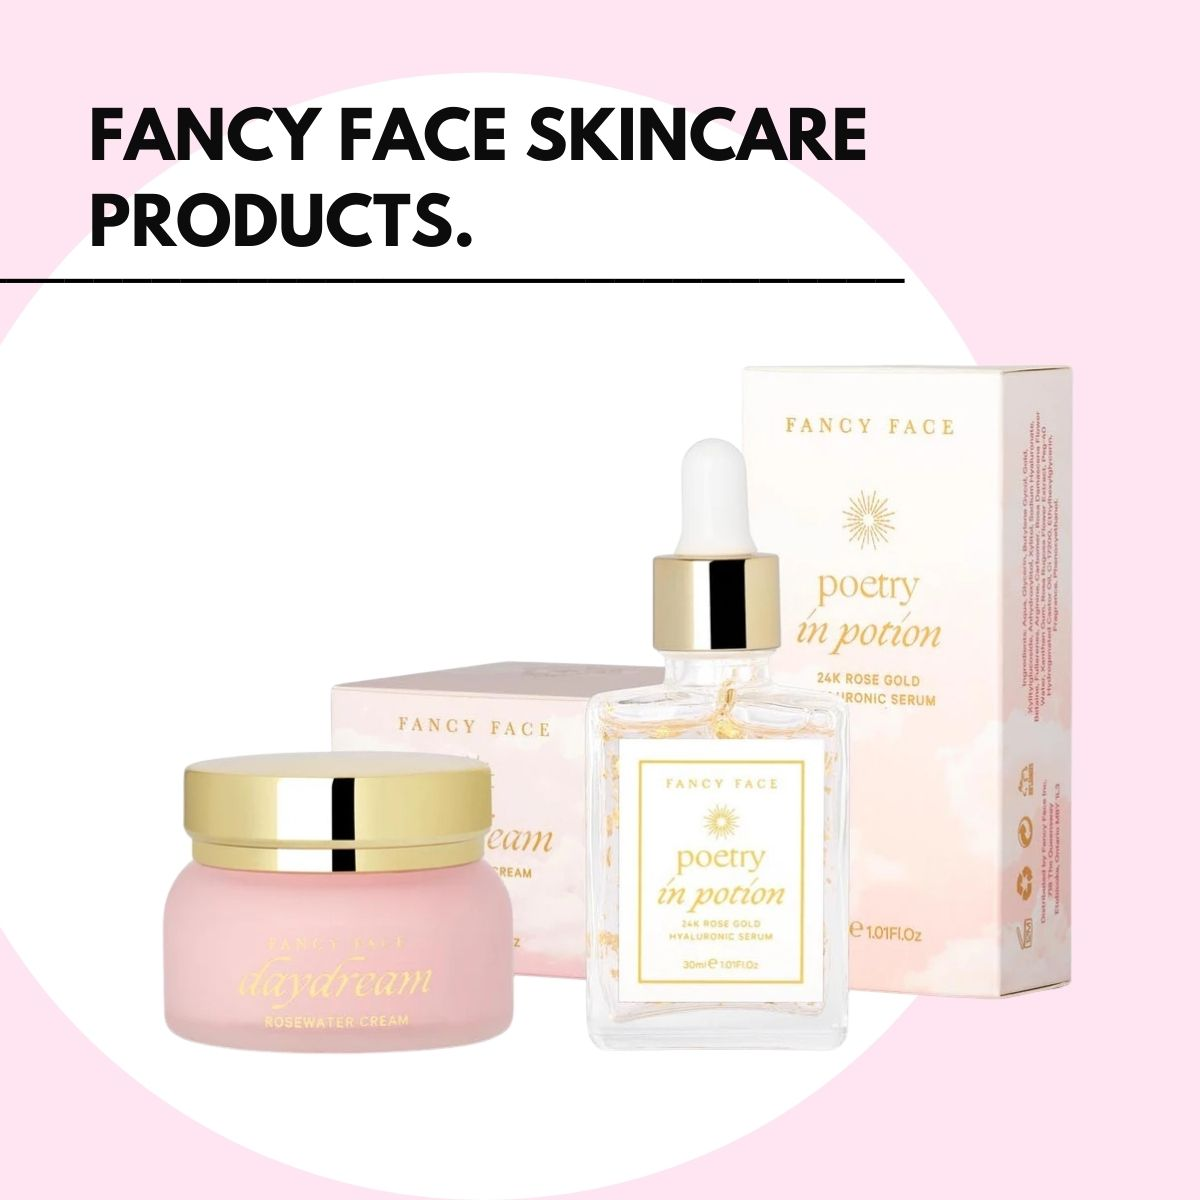 gifts for yourself - fancy face skincare